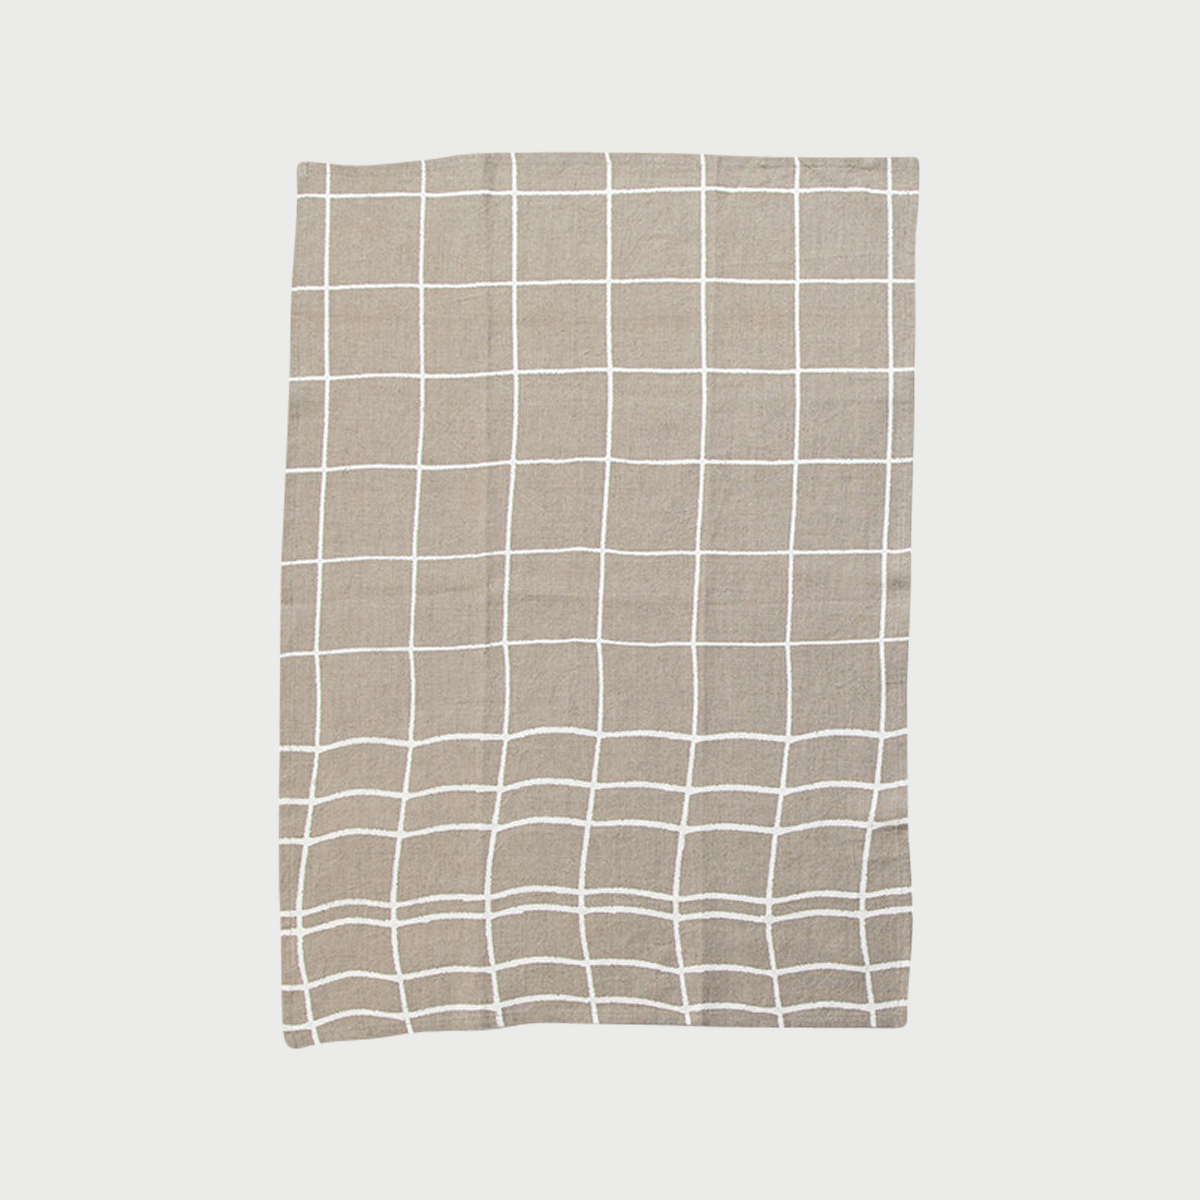 Alyson fox tea towels grid natural